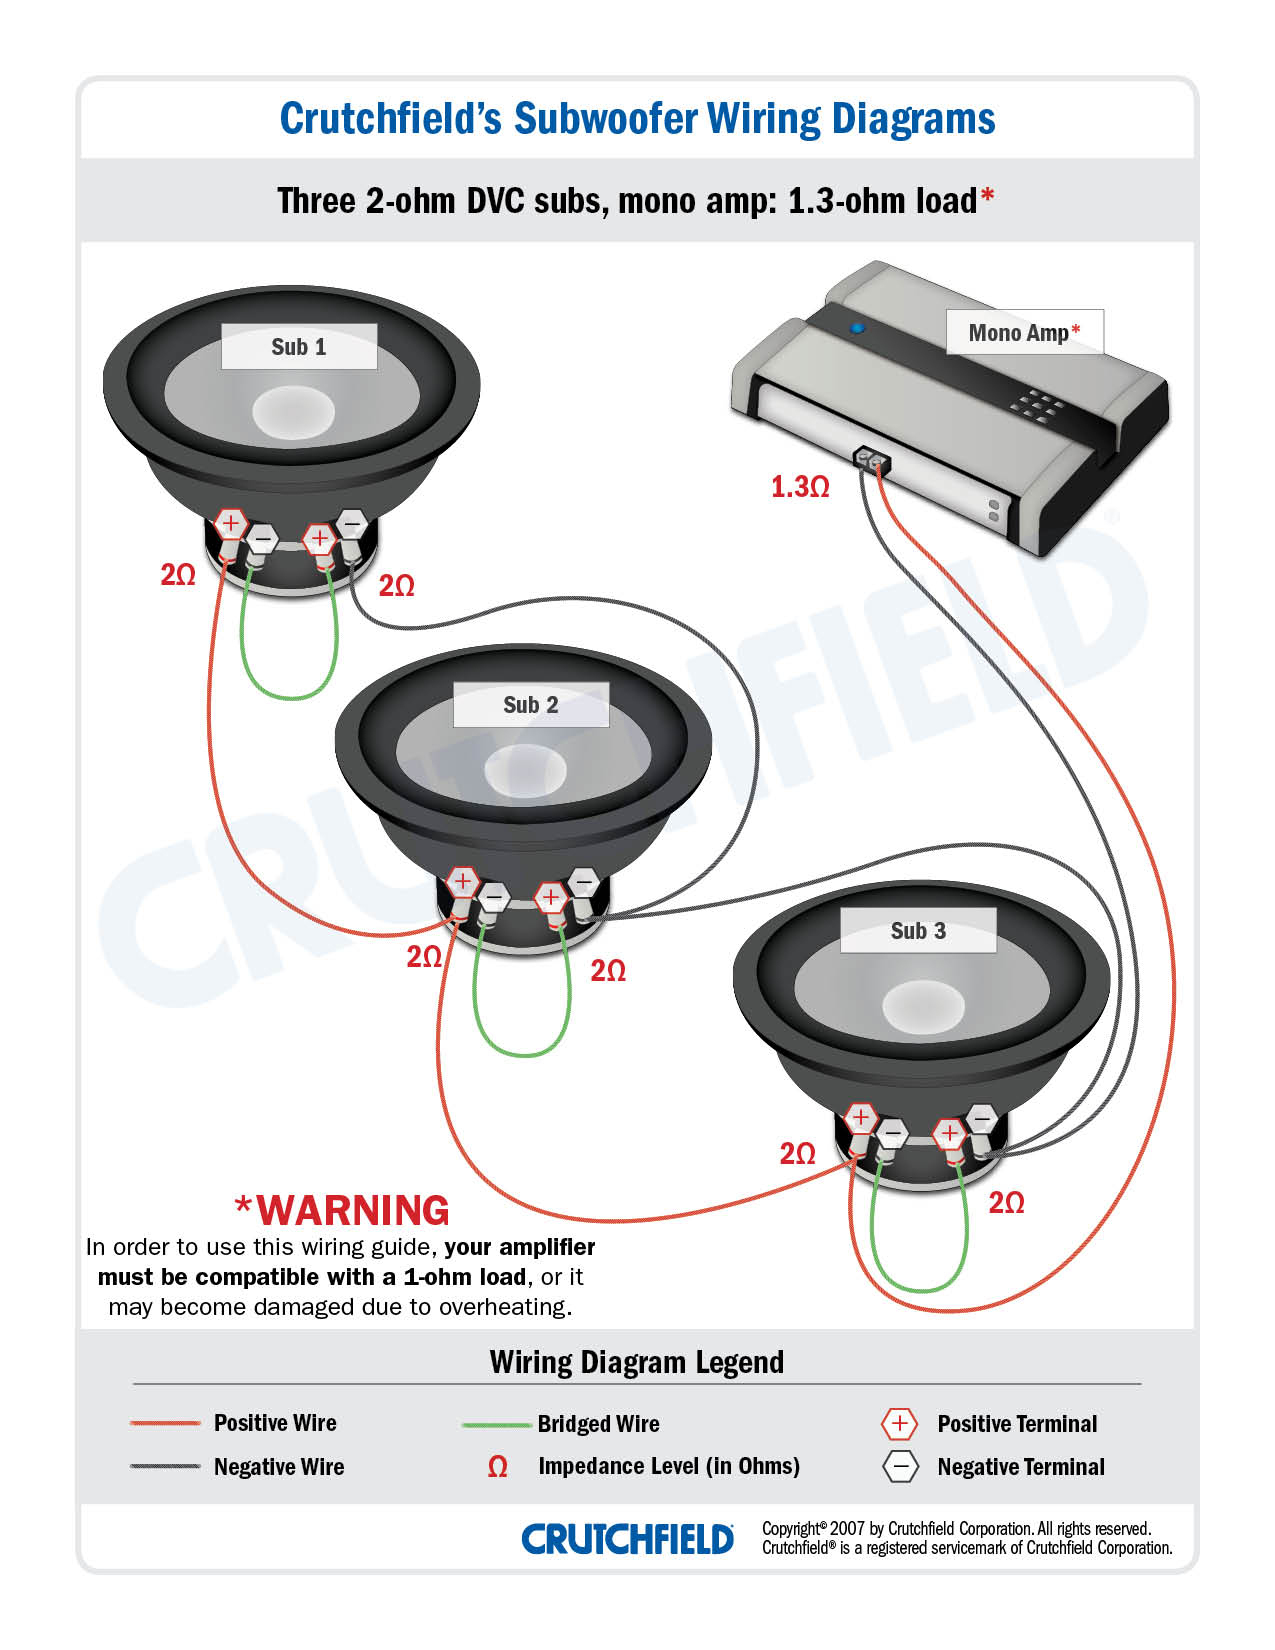 Subwoofer Wiring Diagrams — How To Wire Your Subs - Subwoofer Wiring Diagram